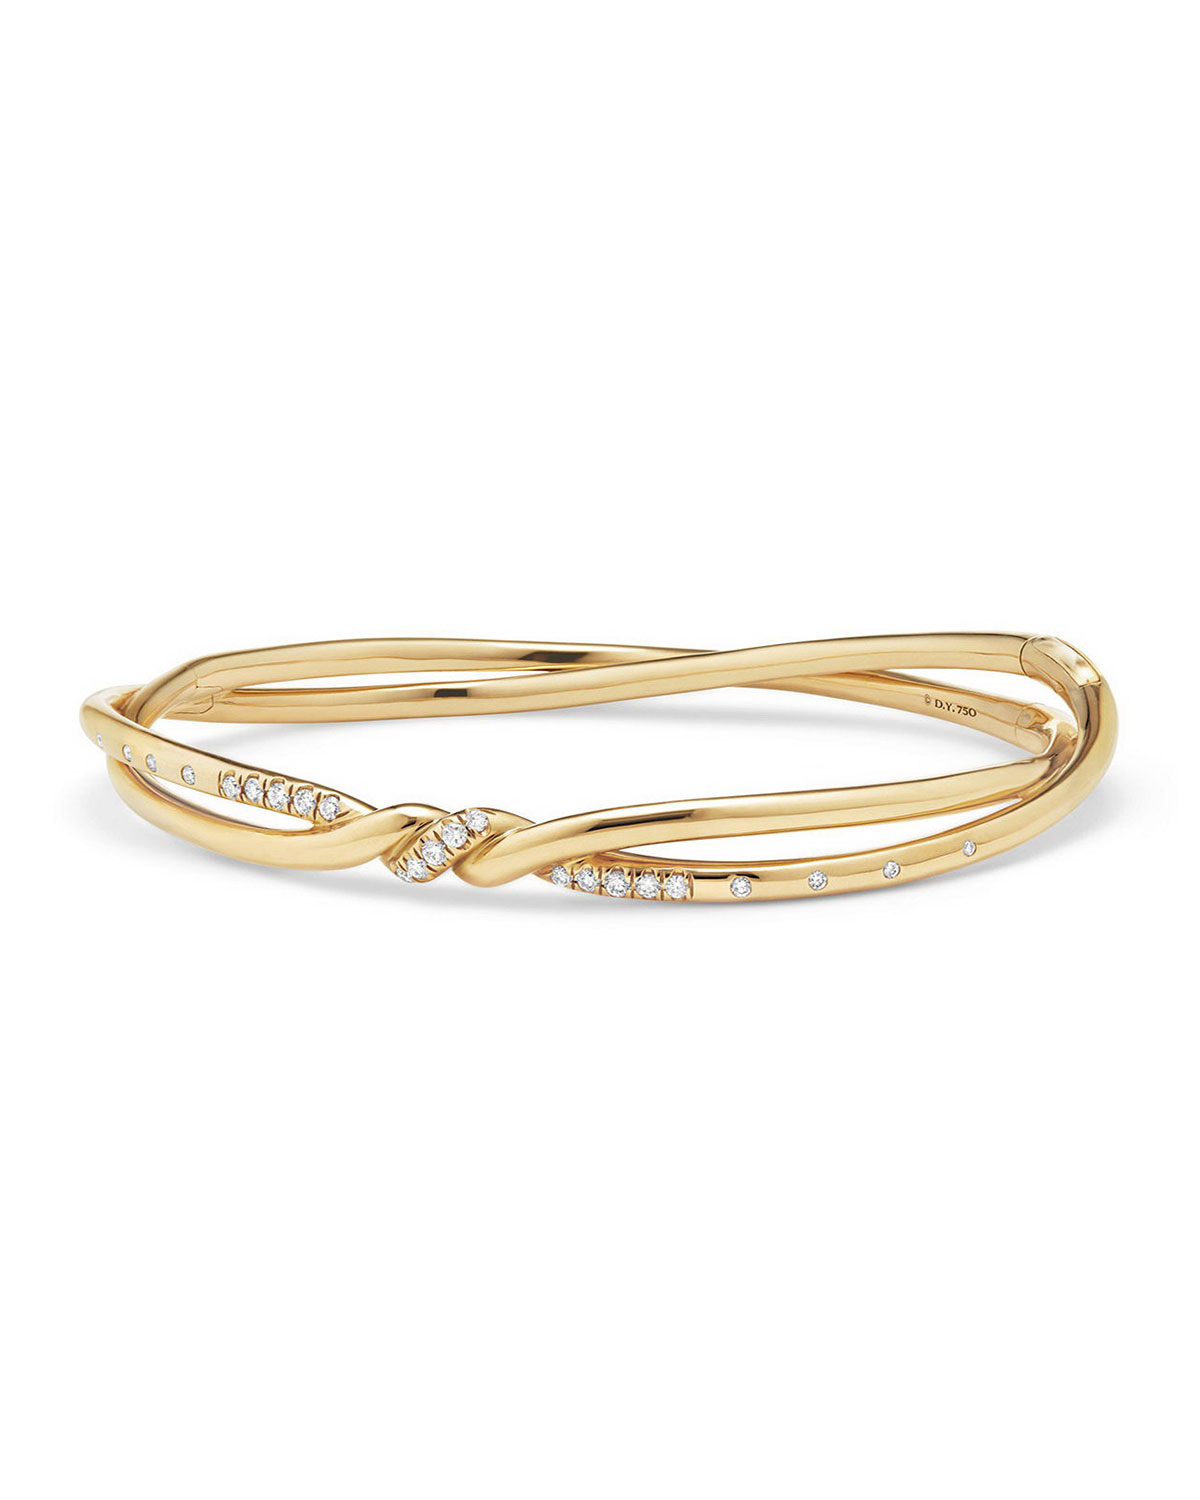 David Yurman Continuance Twisted 18K Bracelet with Diamonds